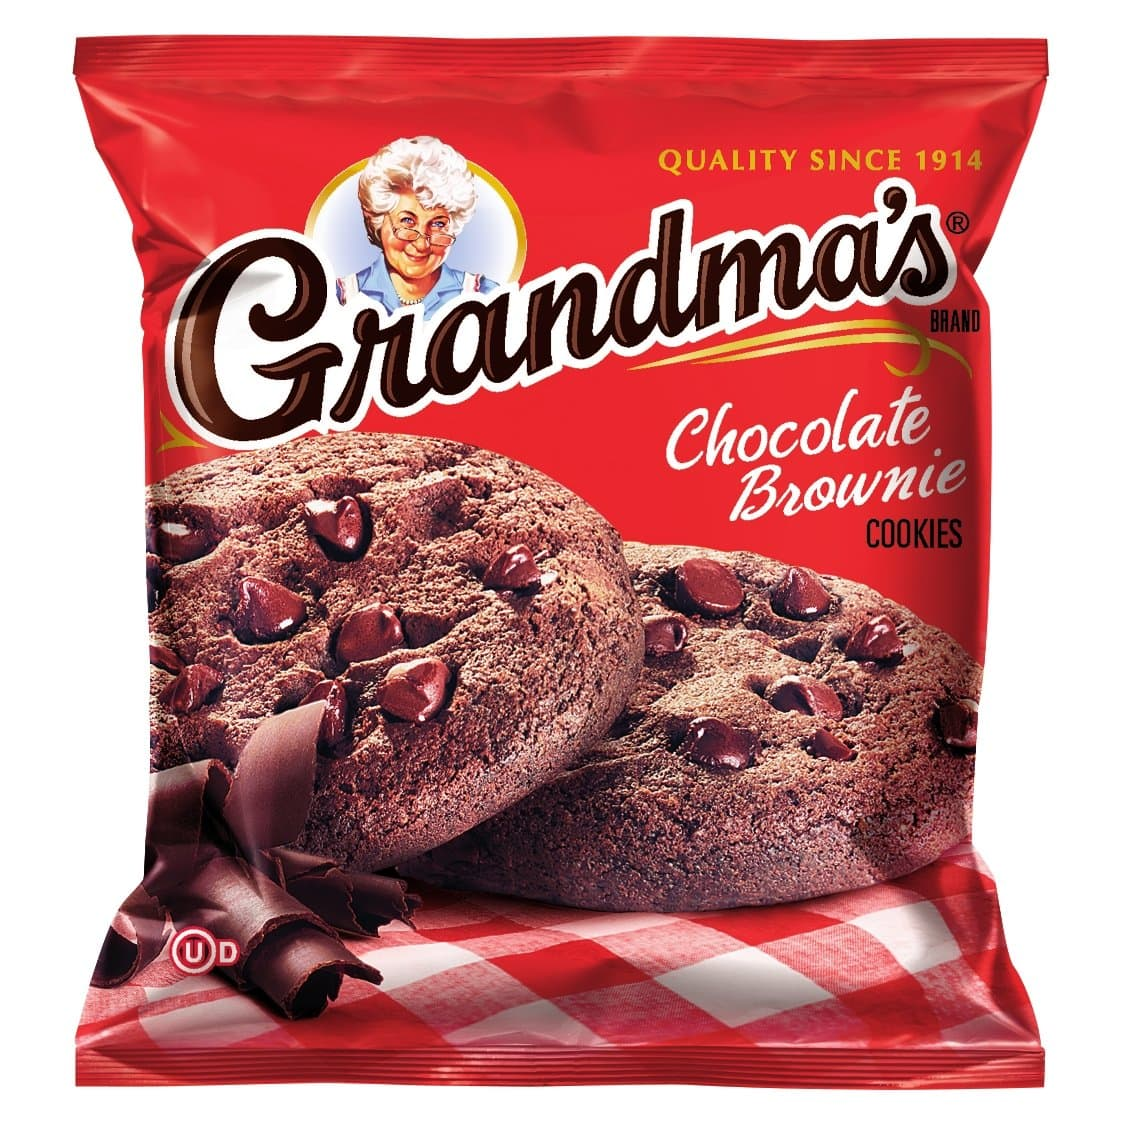 60-Pack 2.5oz Grandma's Cookies (Chocolate Brownie) $15.89 w/ S&S + Free Shipping